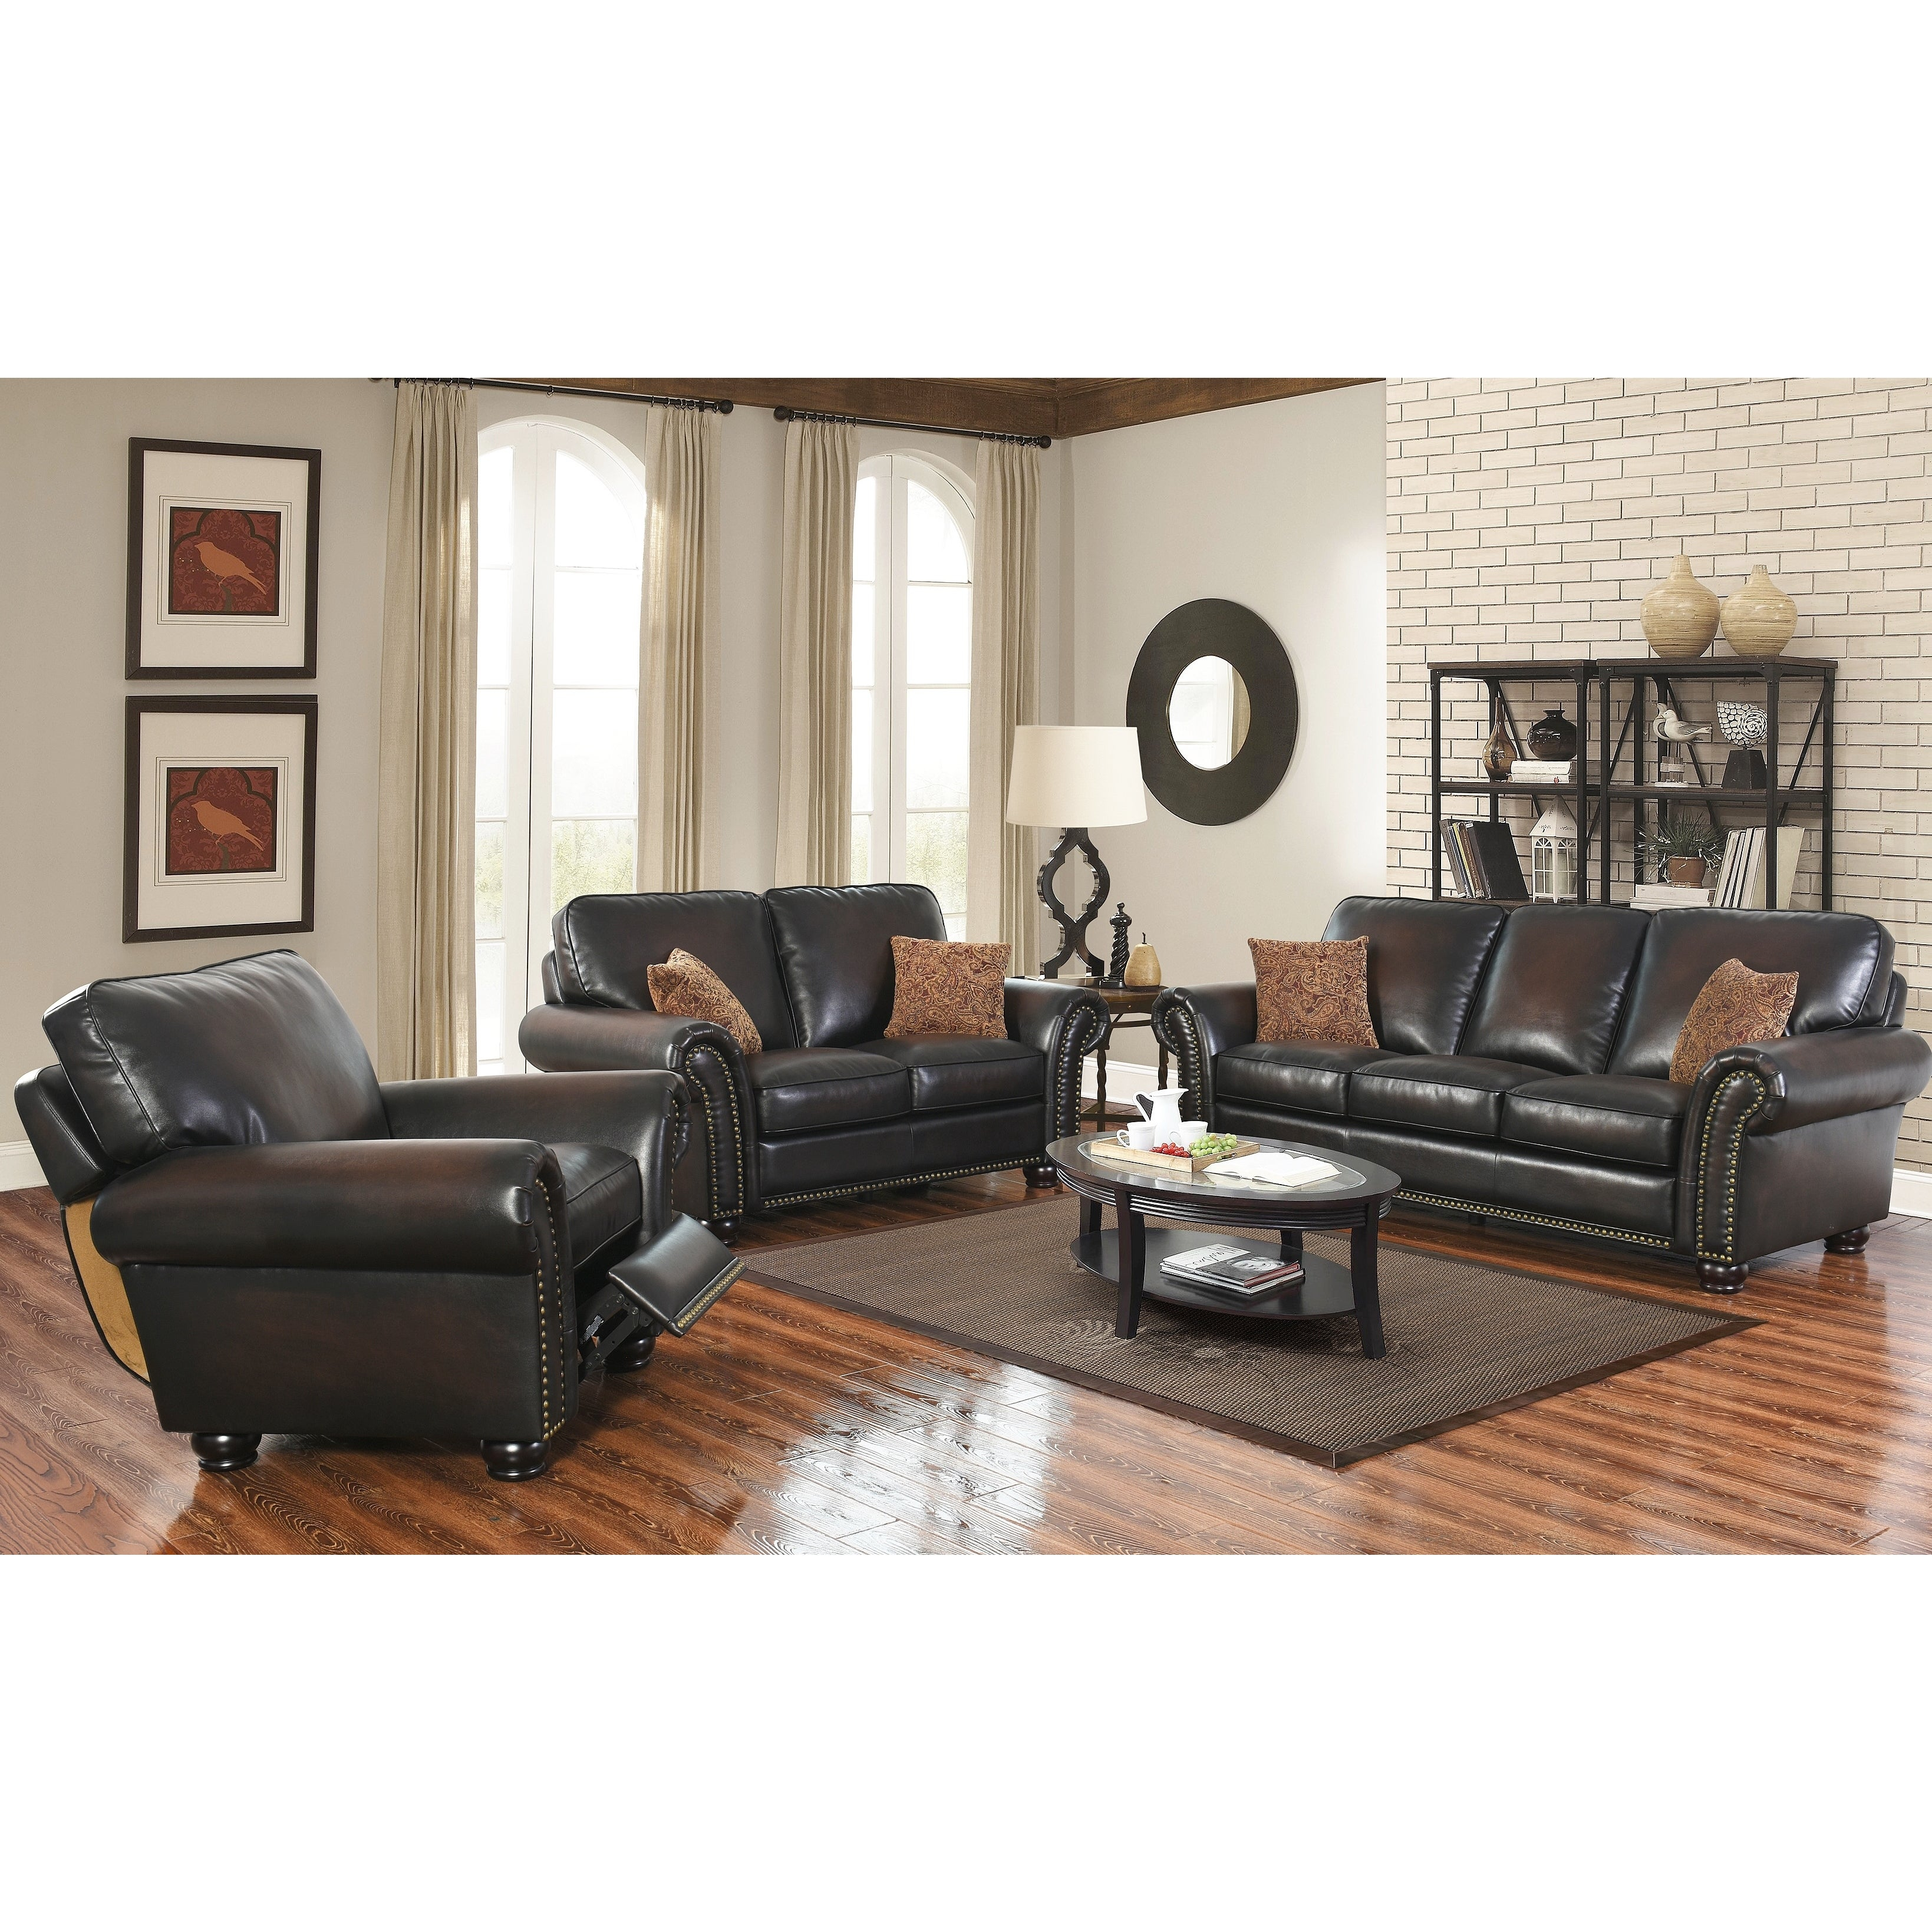 Abson Braxton Brown Bonded Leather 3 Piece Living Room Set with Living Room 3 Piece Sets